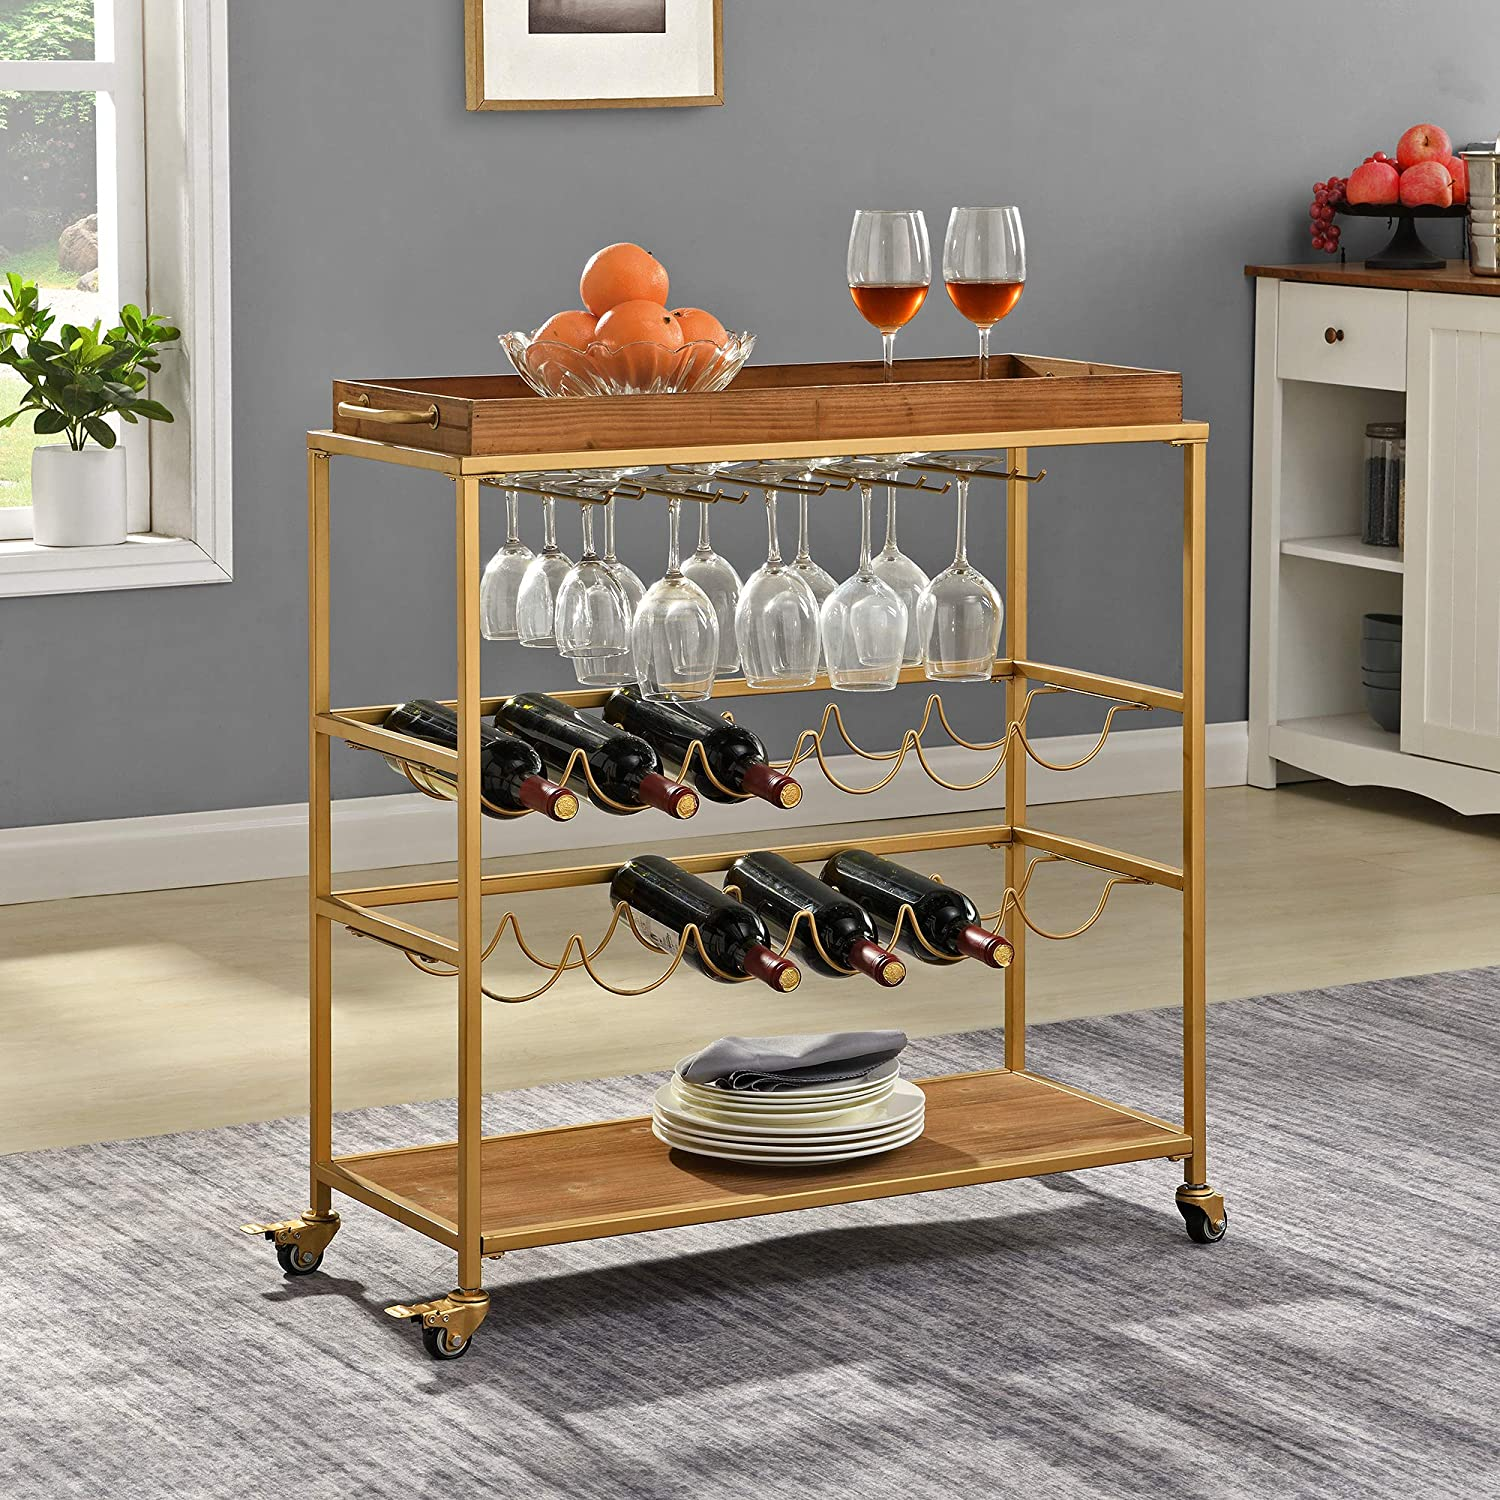 FirsTime & Co. Gold Concord Farmhouse Removable Tray Bar Cart, American Designed, Gold, 32.5 x 13 x 30 inches